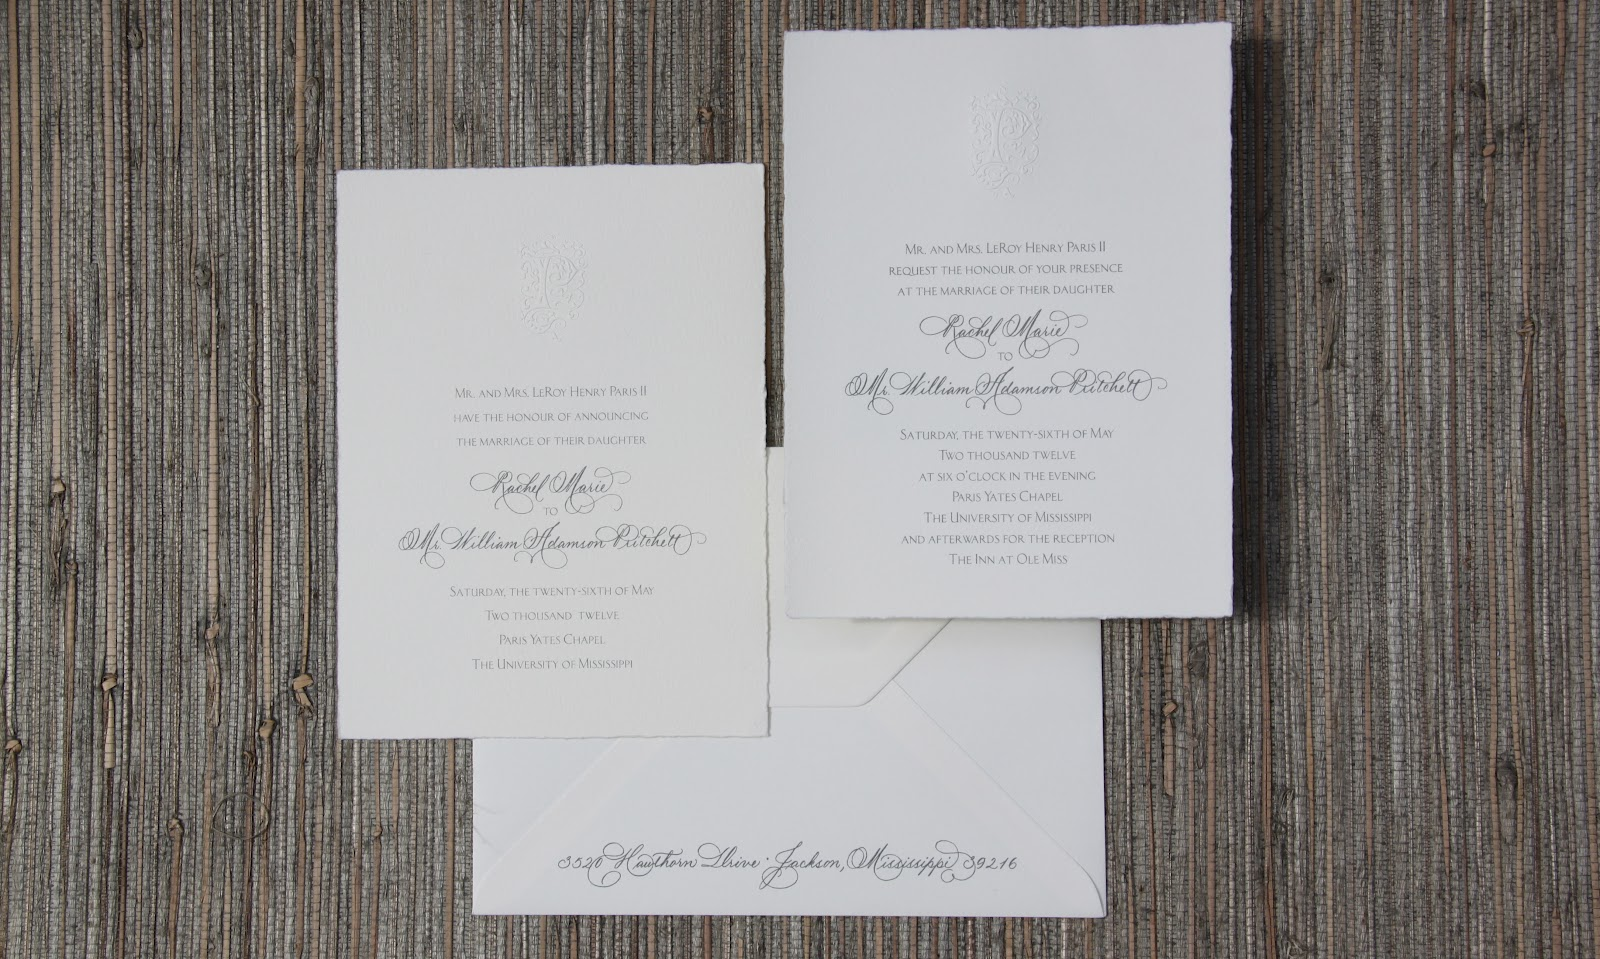 Wedding invitation posts fresh ink style sentiment stunning calligraphy was printed on imported italian paper for this invitation monicamarmolfo Image collections